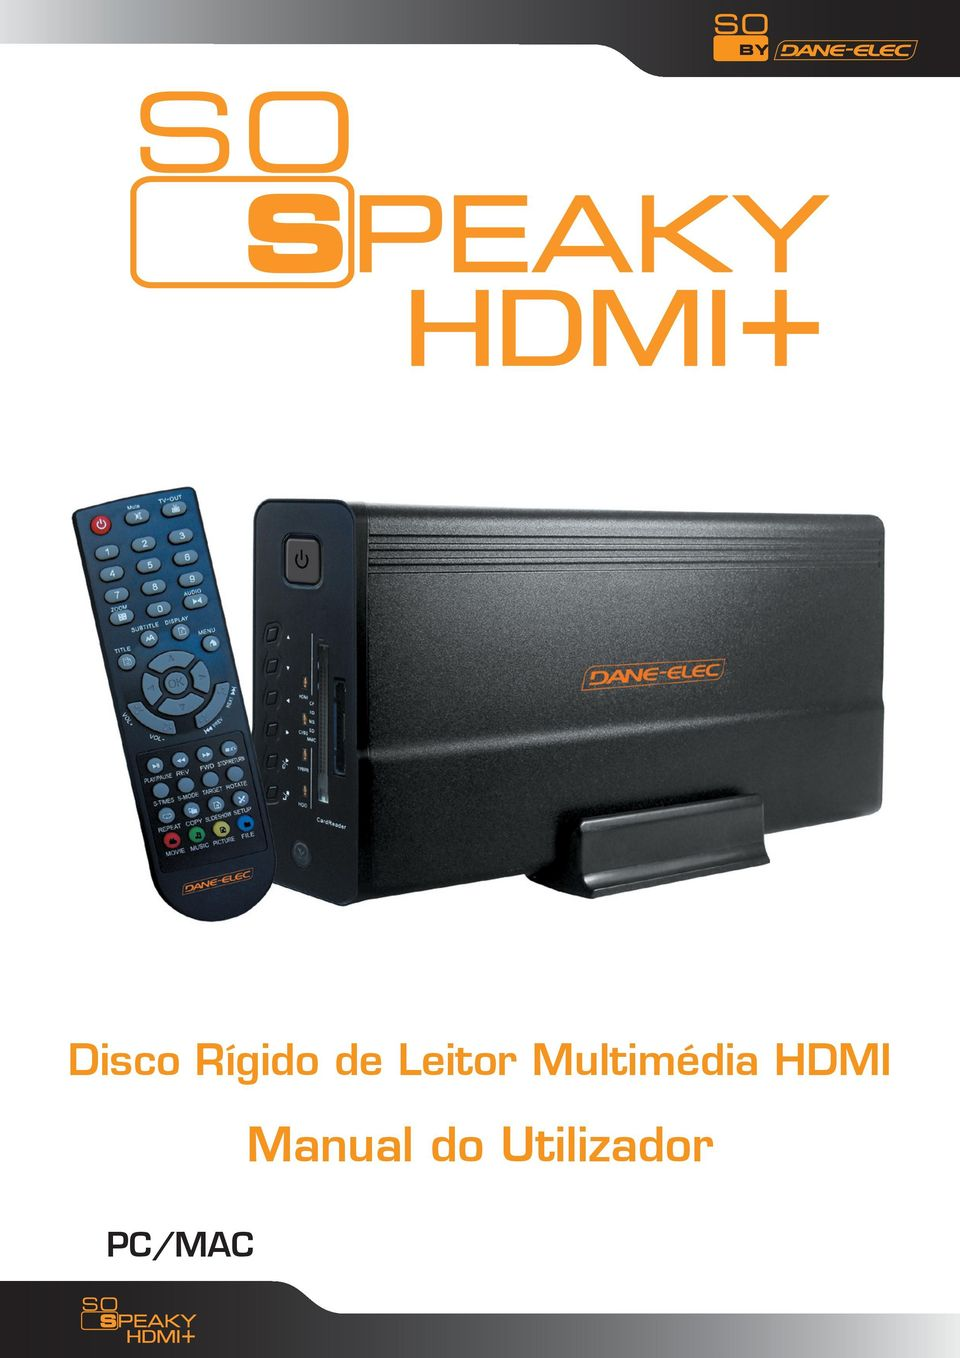 Multimédia HDMI